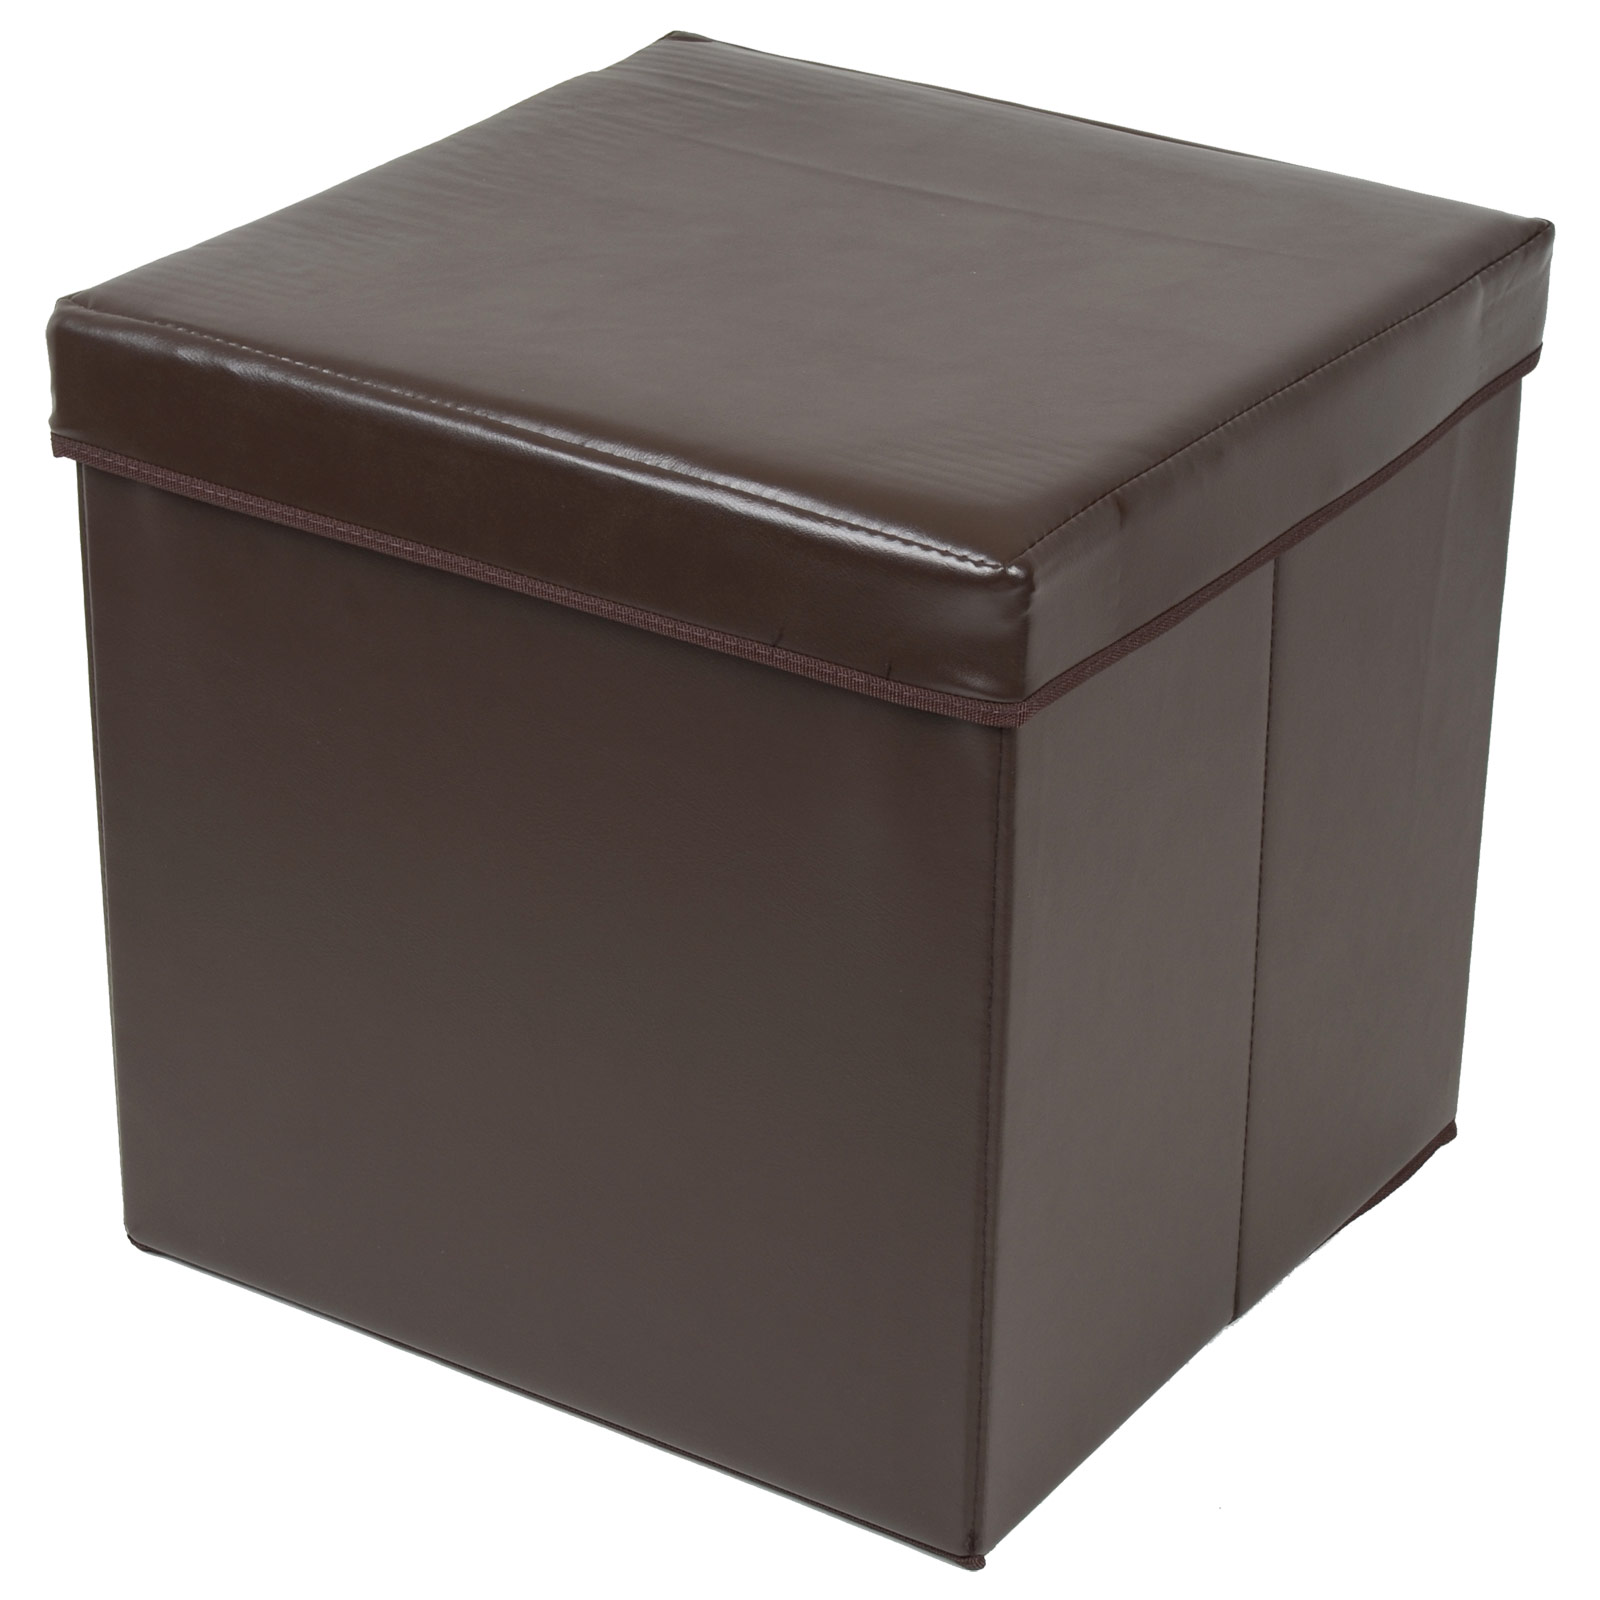 Folding Storage Stool With Lid Brown Faux Leather 38cm